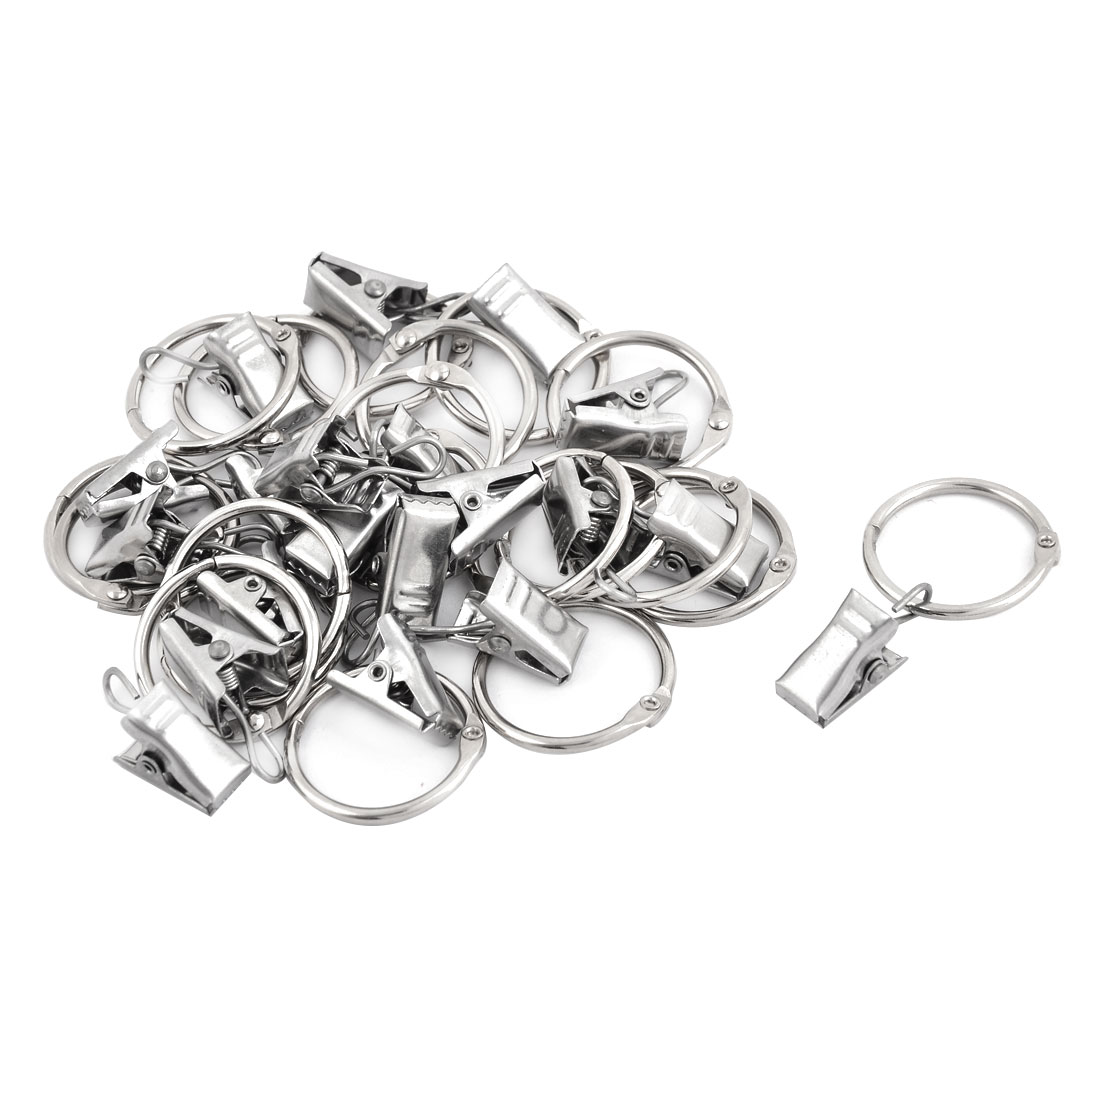 Metal Window Curtain Drapery Hanging Hook Clip Clamp Ring Silver Tone 20pcs